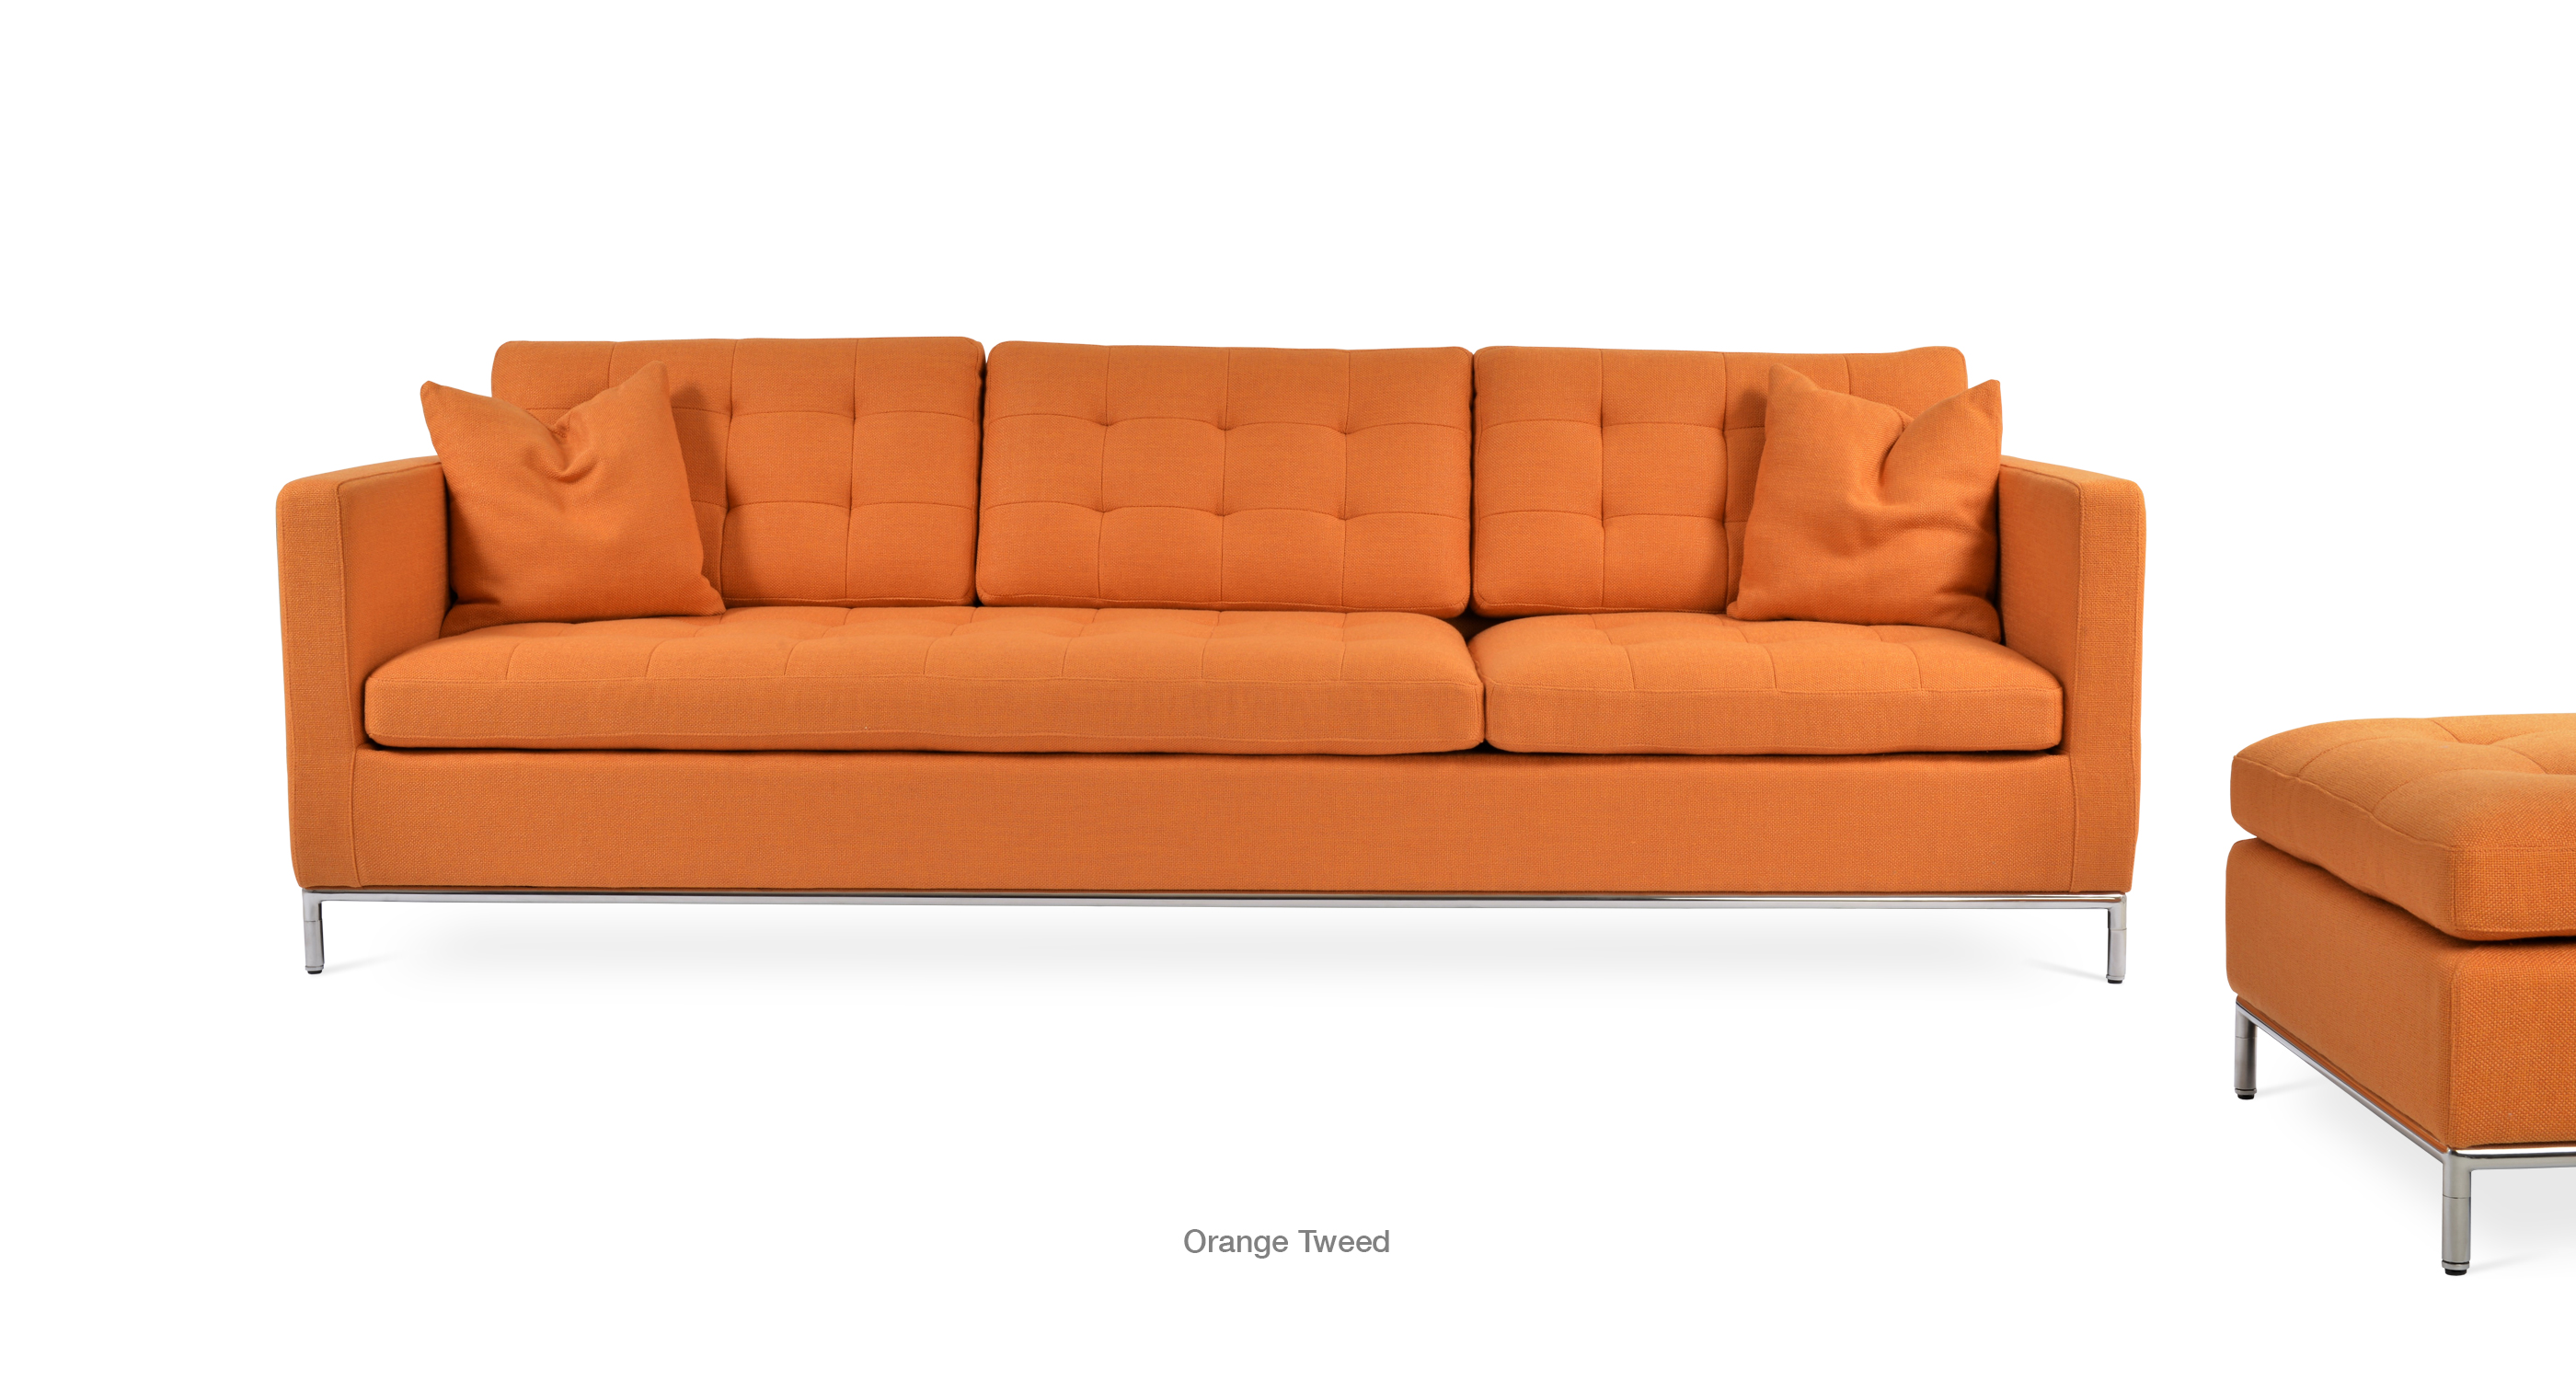 room washington trapper victory brown taupe lane sectional taupetrapper living sofa sets furniture orange shop